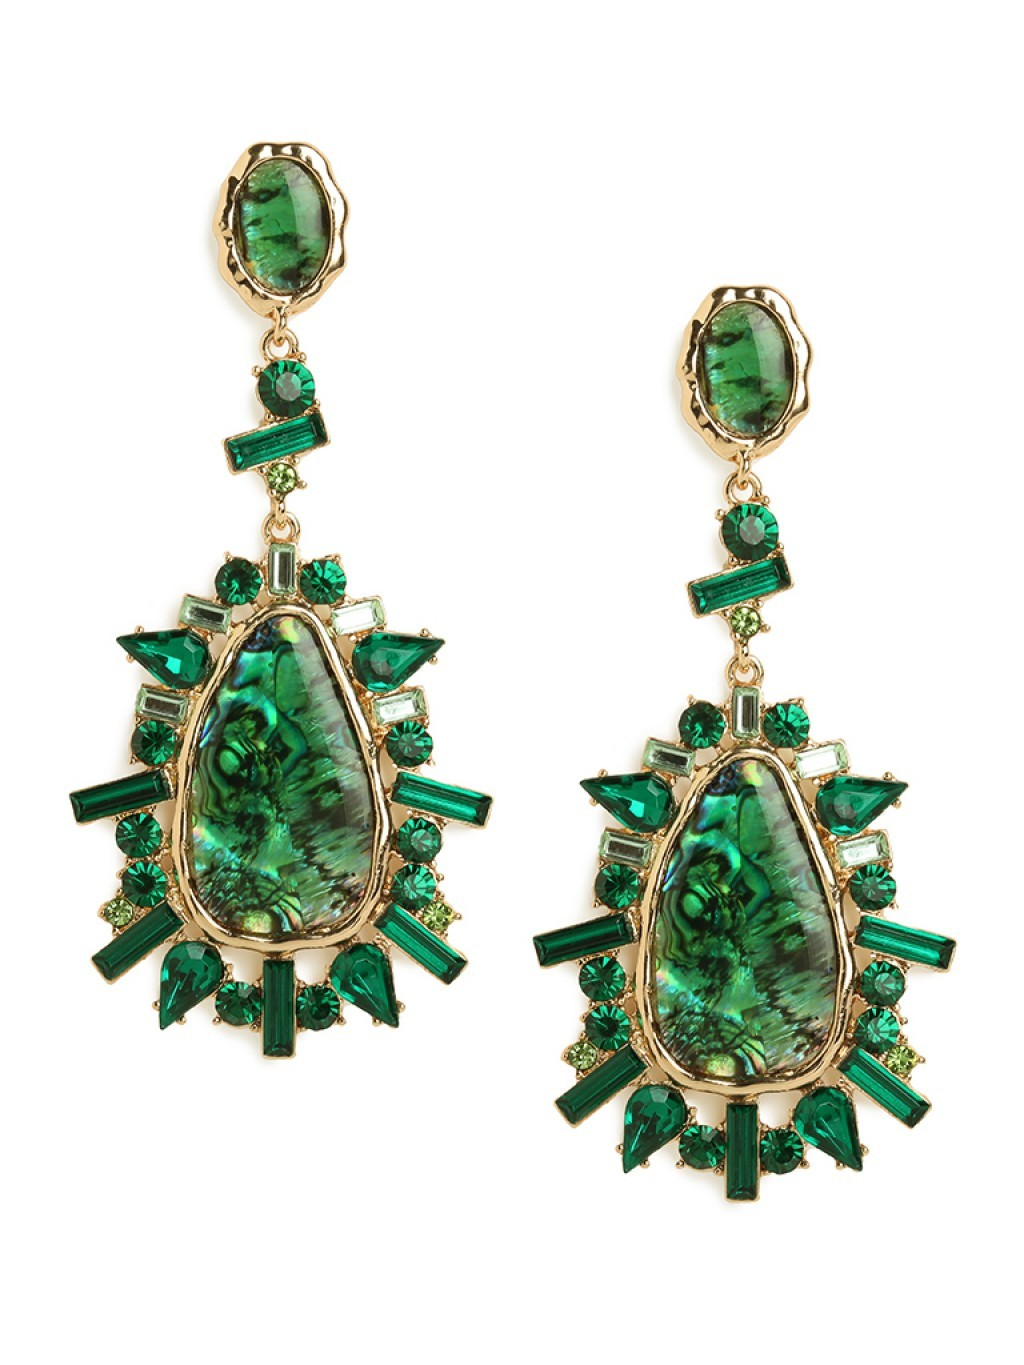 Emerald-green-gold-statement-bridal-earrings.full